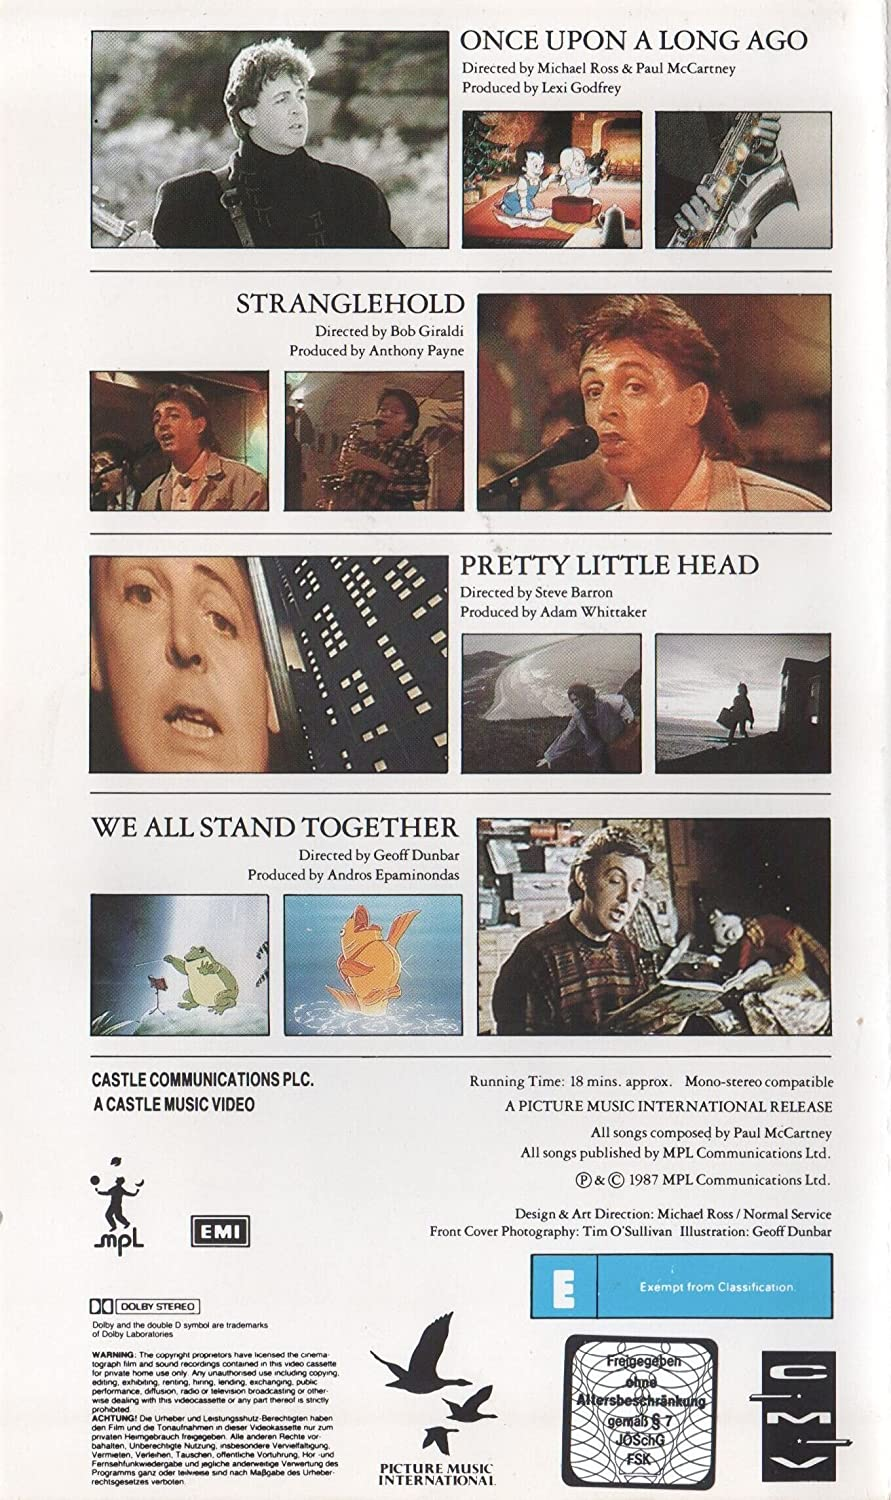 Paul McCartney - Once Upon A Video [VHS] [1987]: Amazon.co.uk: DVD ...